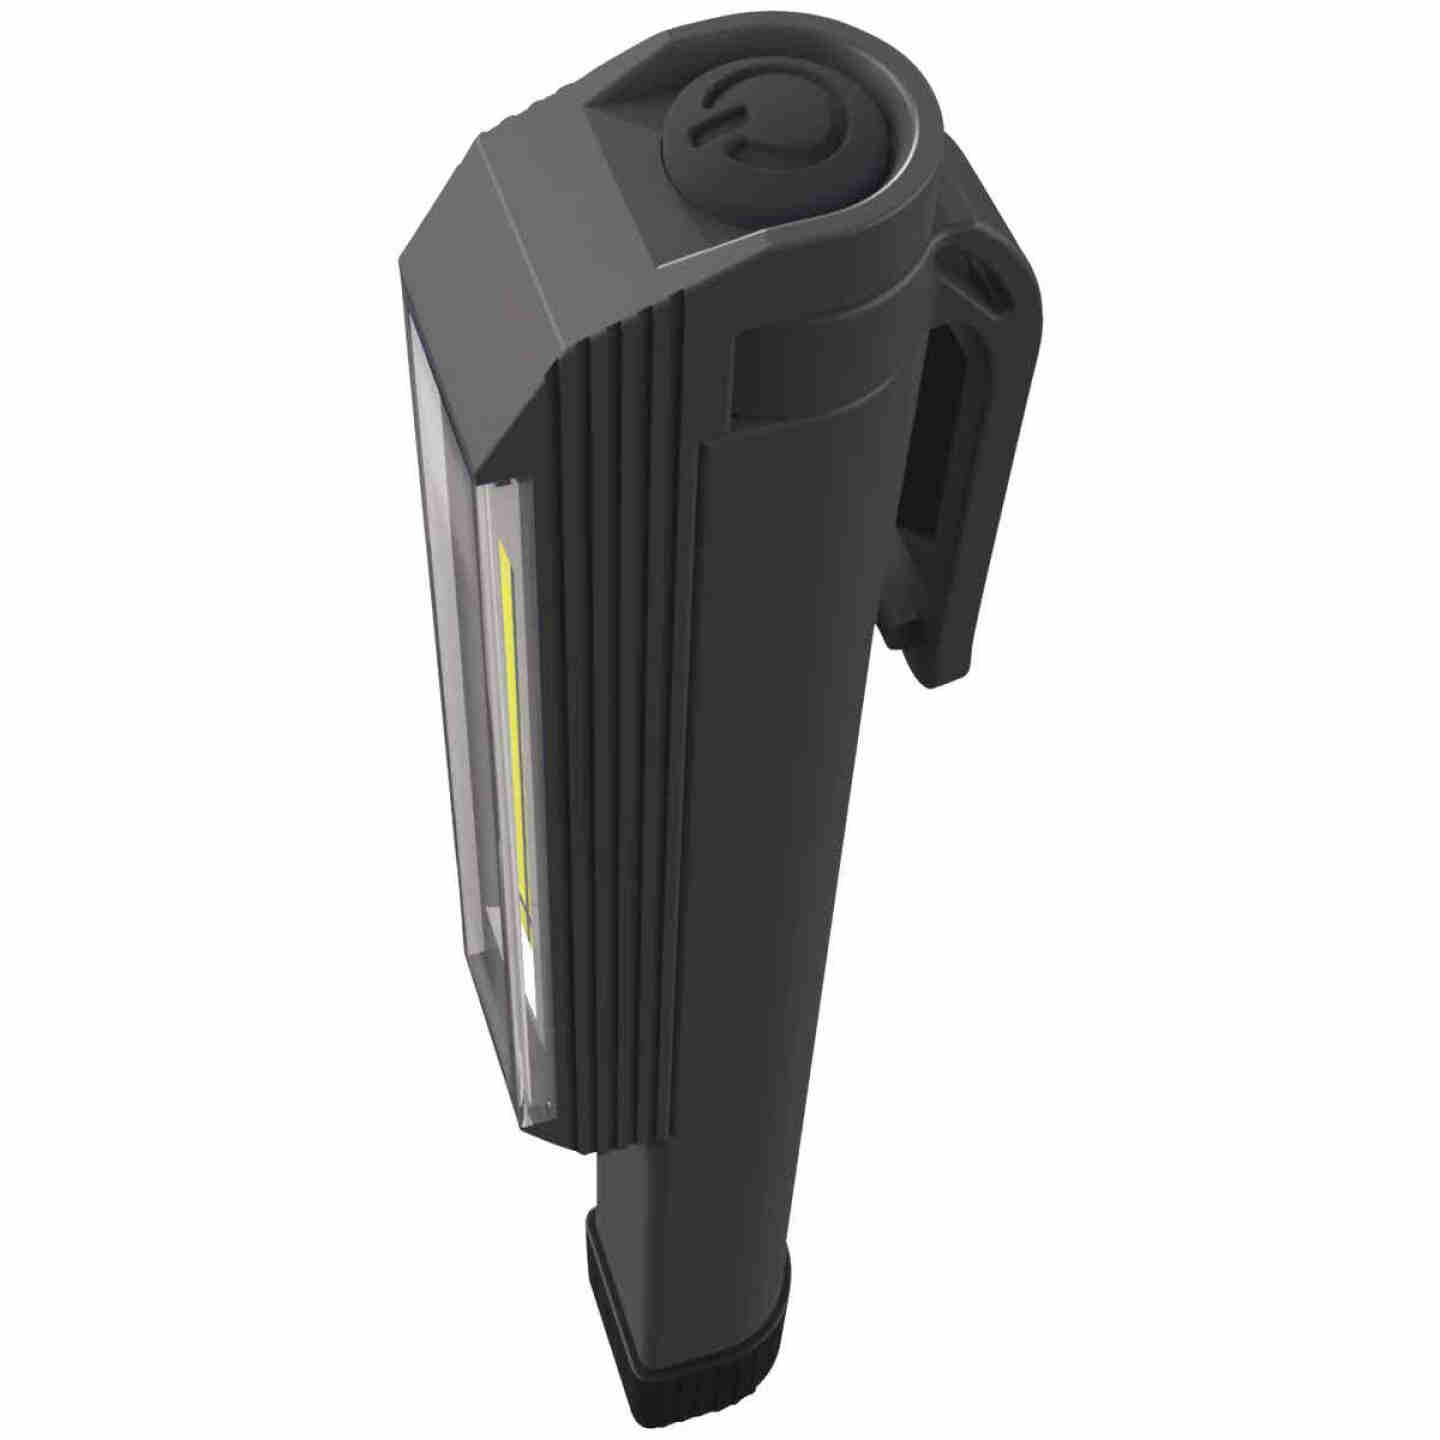 Nebo Larry 170 Lm. COB LED Flashlight, Gray Image 3